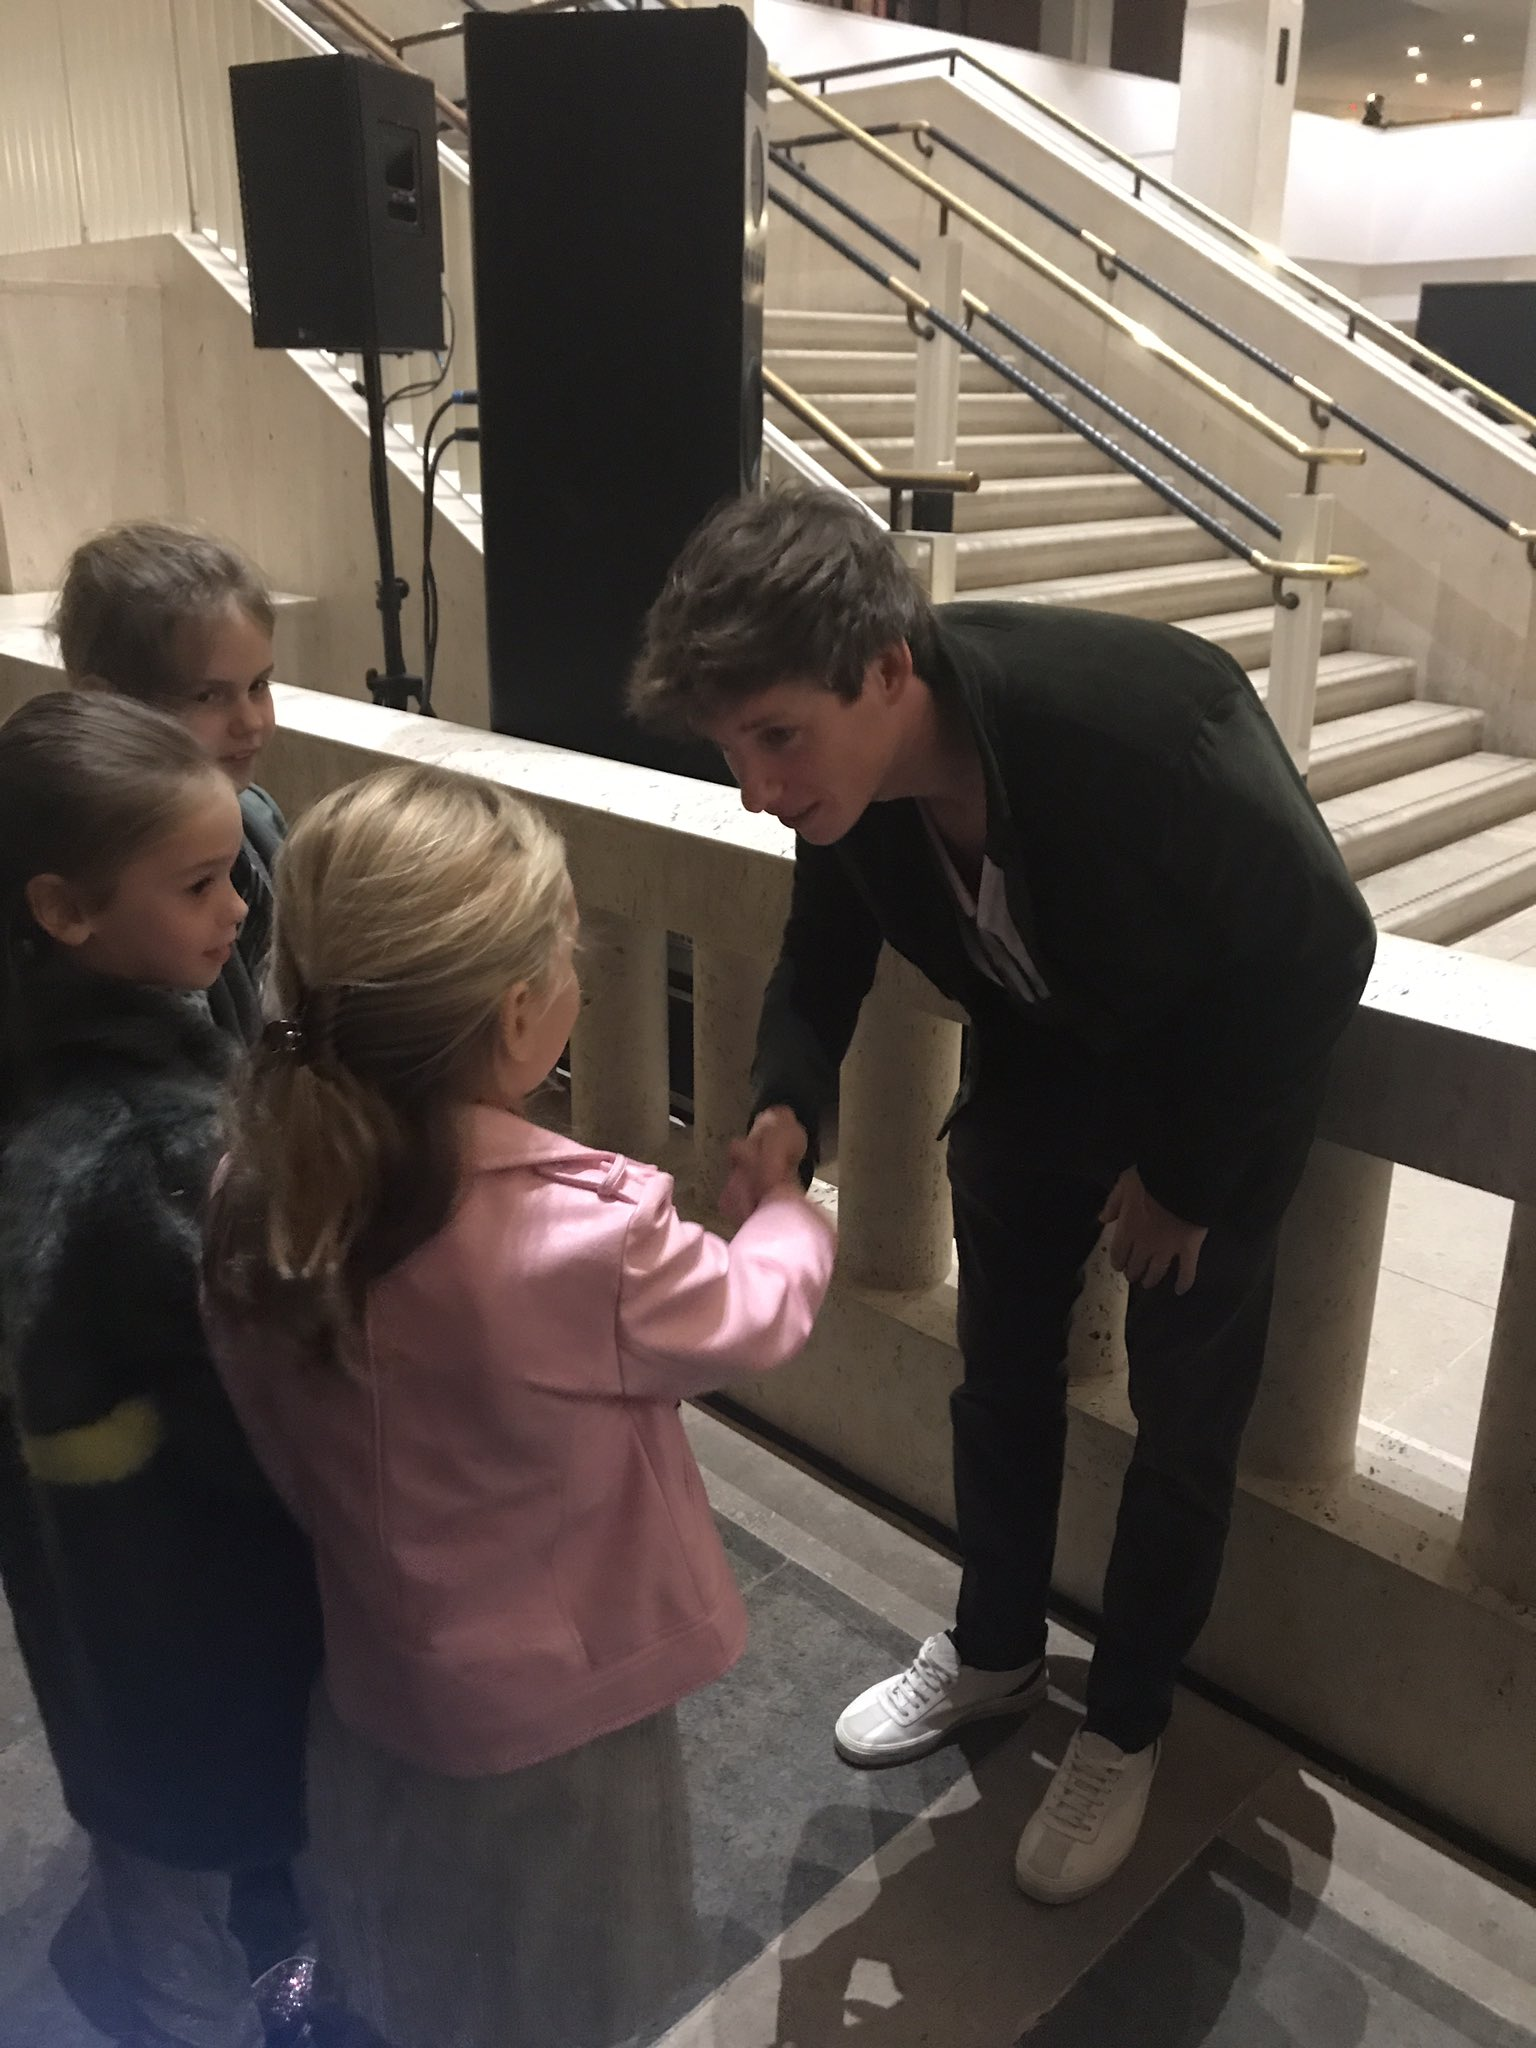 RT @lumos: Some very young supporters chatting with #EddieRedmayne at our event @britishlibrary tonight! #WeAreLumos https://t.co/wcA5Y2wSAD